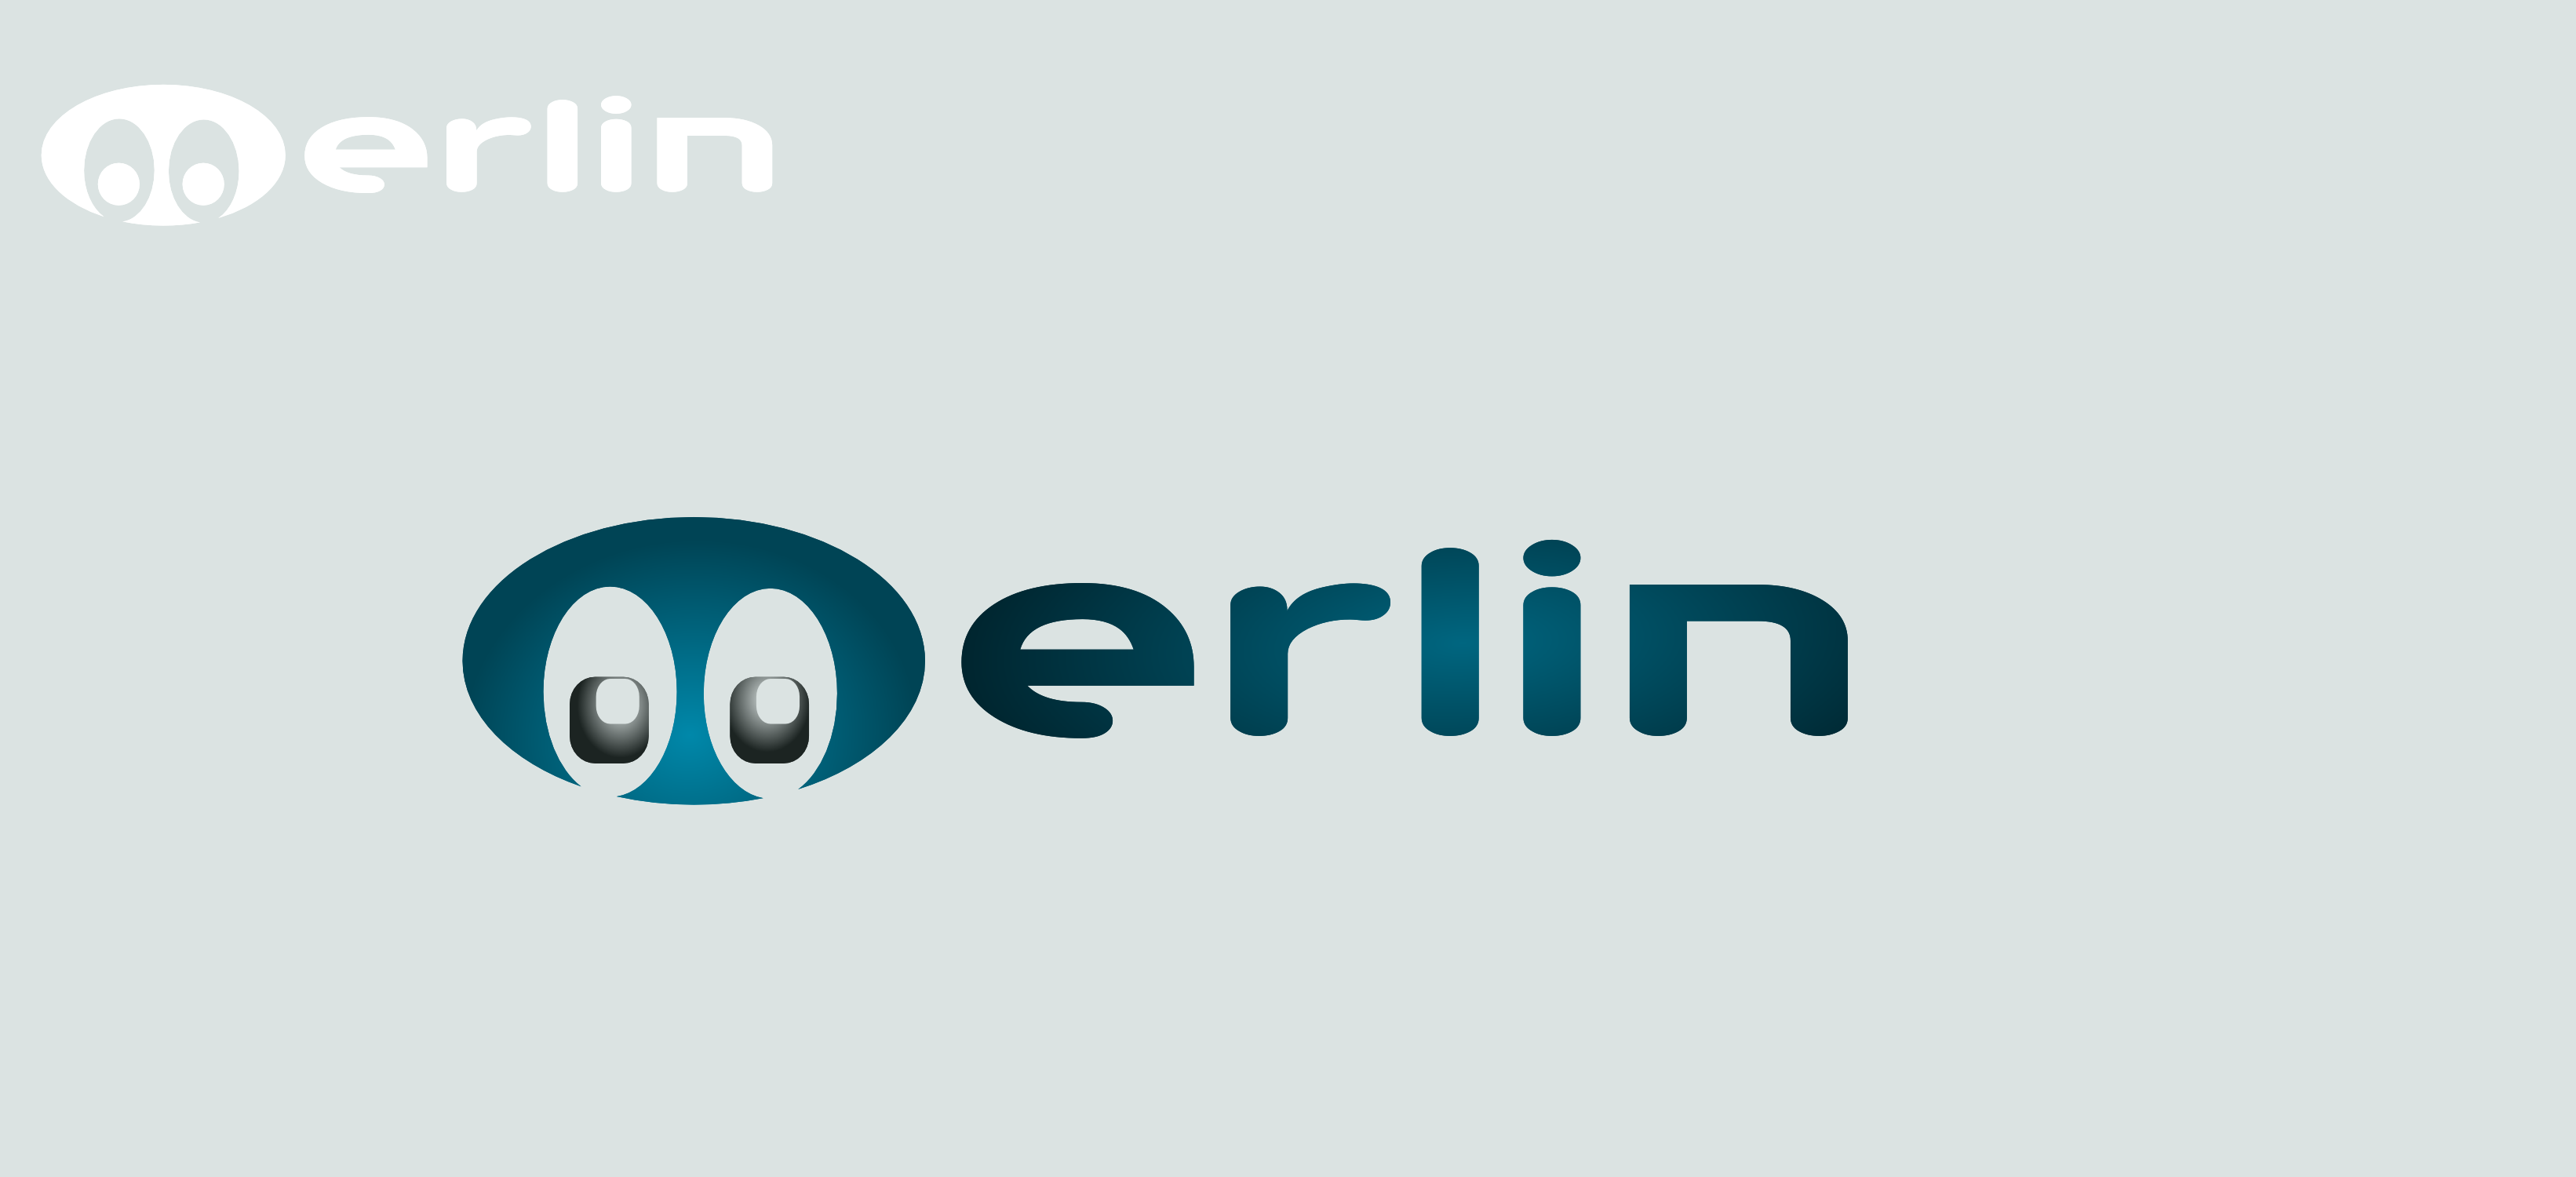 Logo Design by Arindam Khanda - Entry No. 68 in the Logo Design Contest Imaginative Logo Design for Merlin.